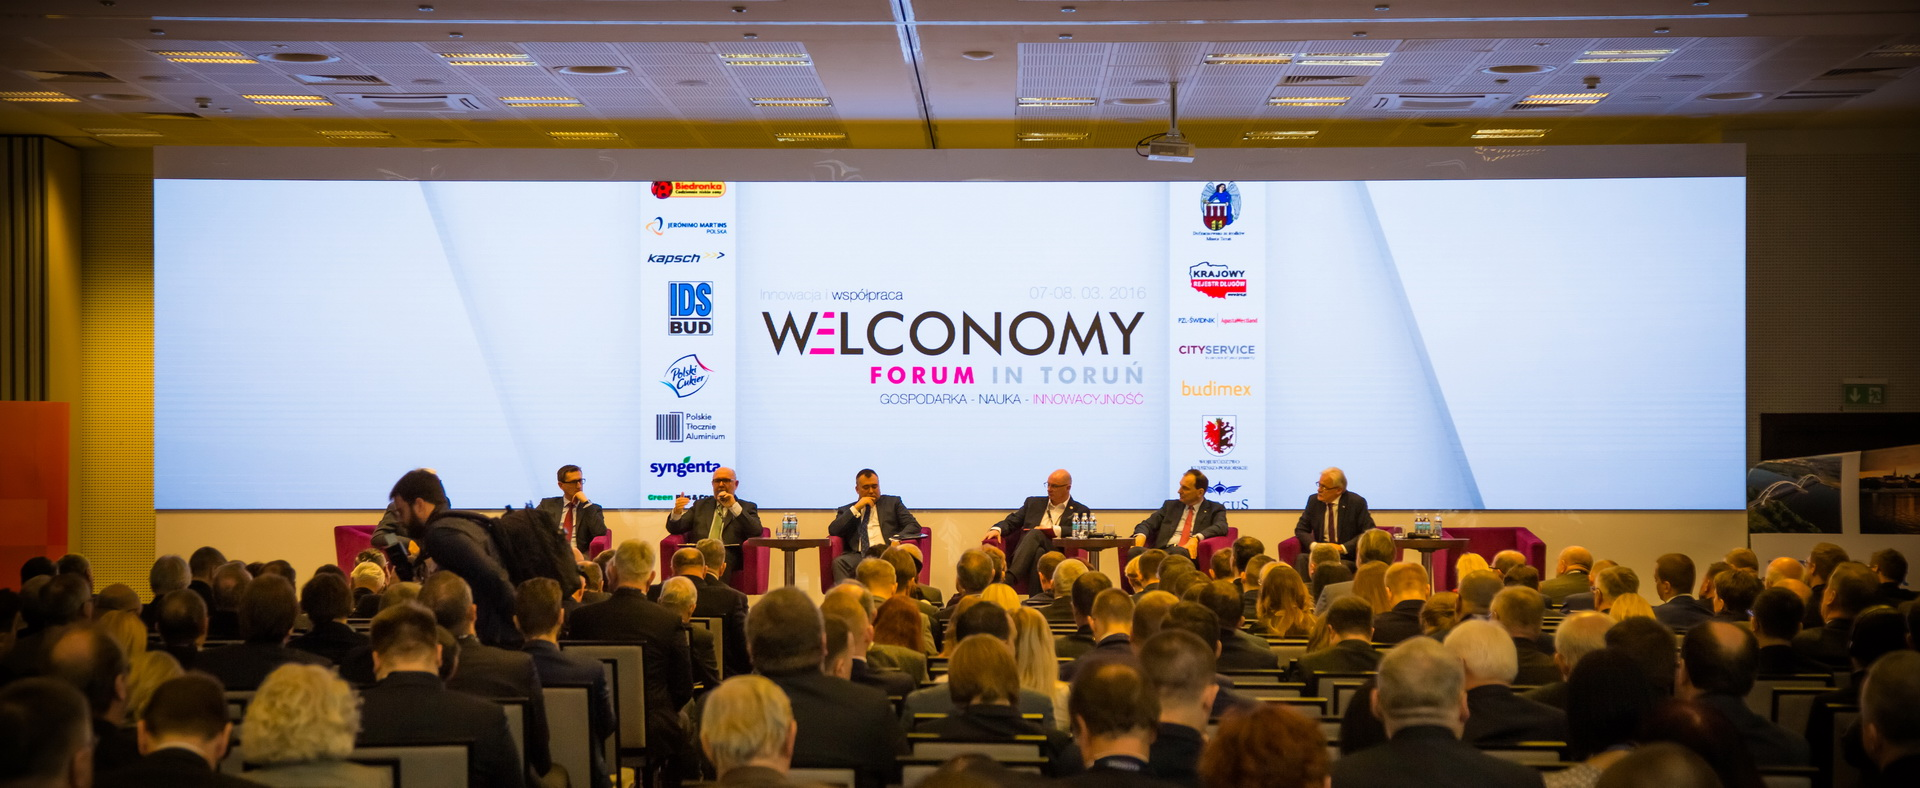 WELCONOMY FORUM 2016